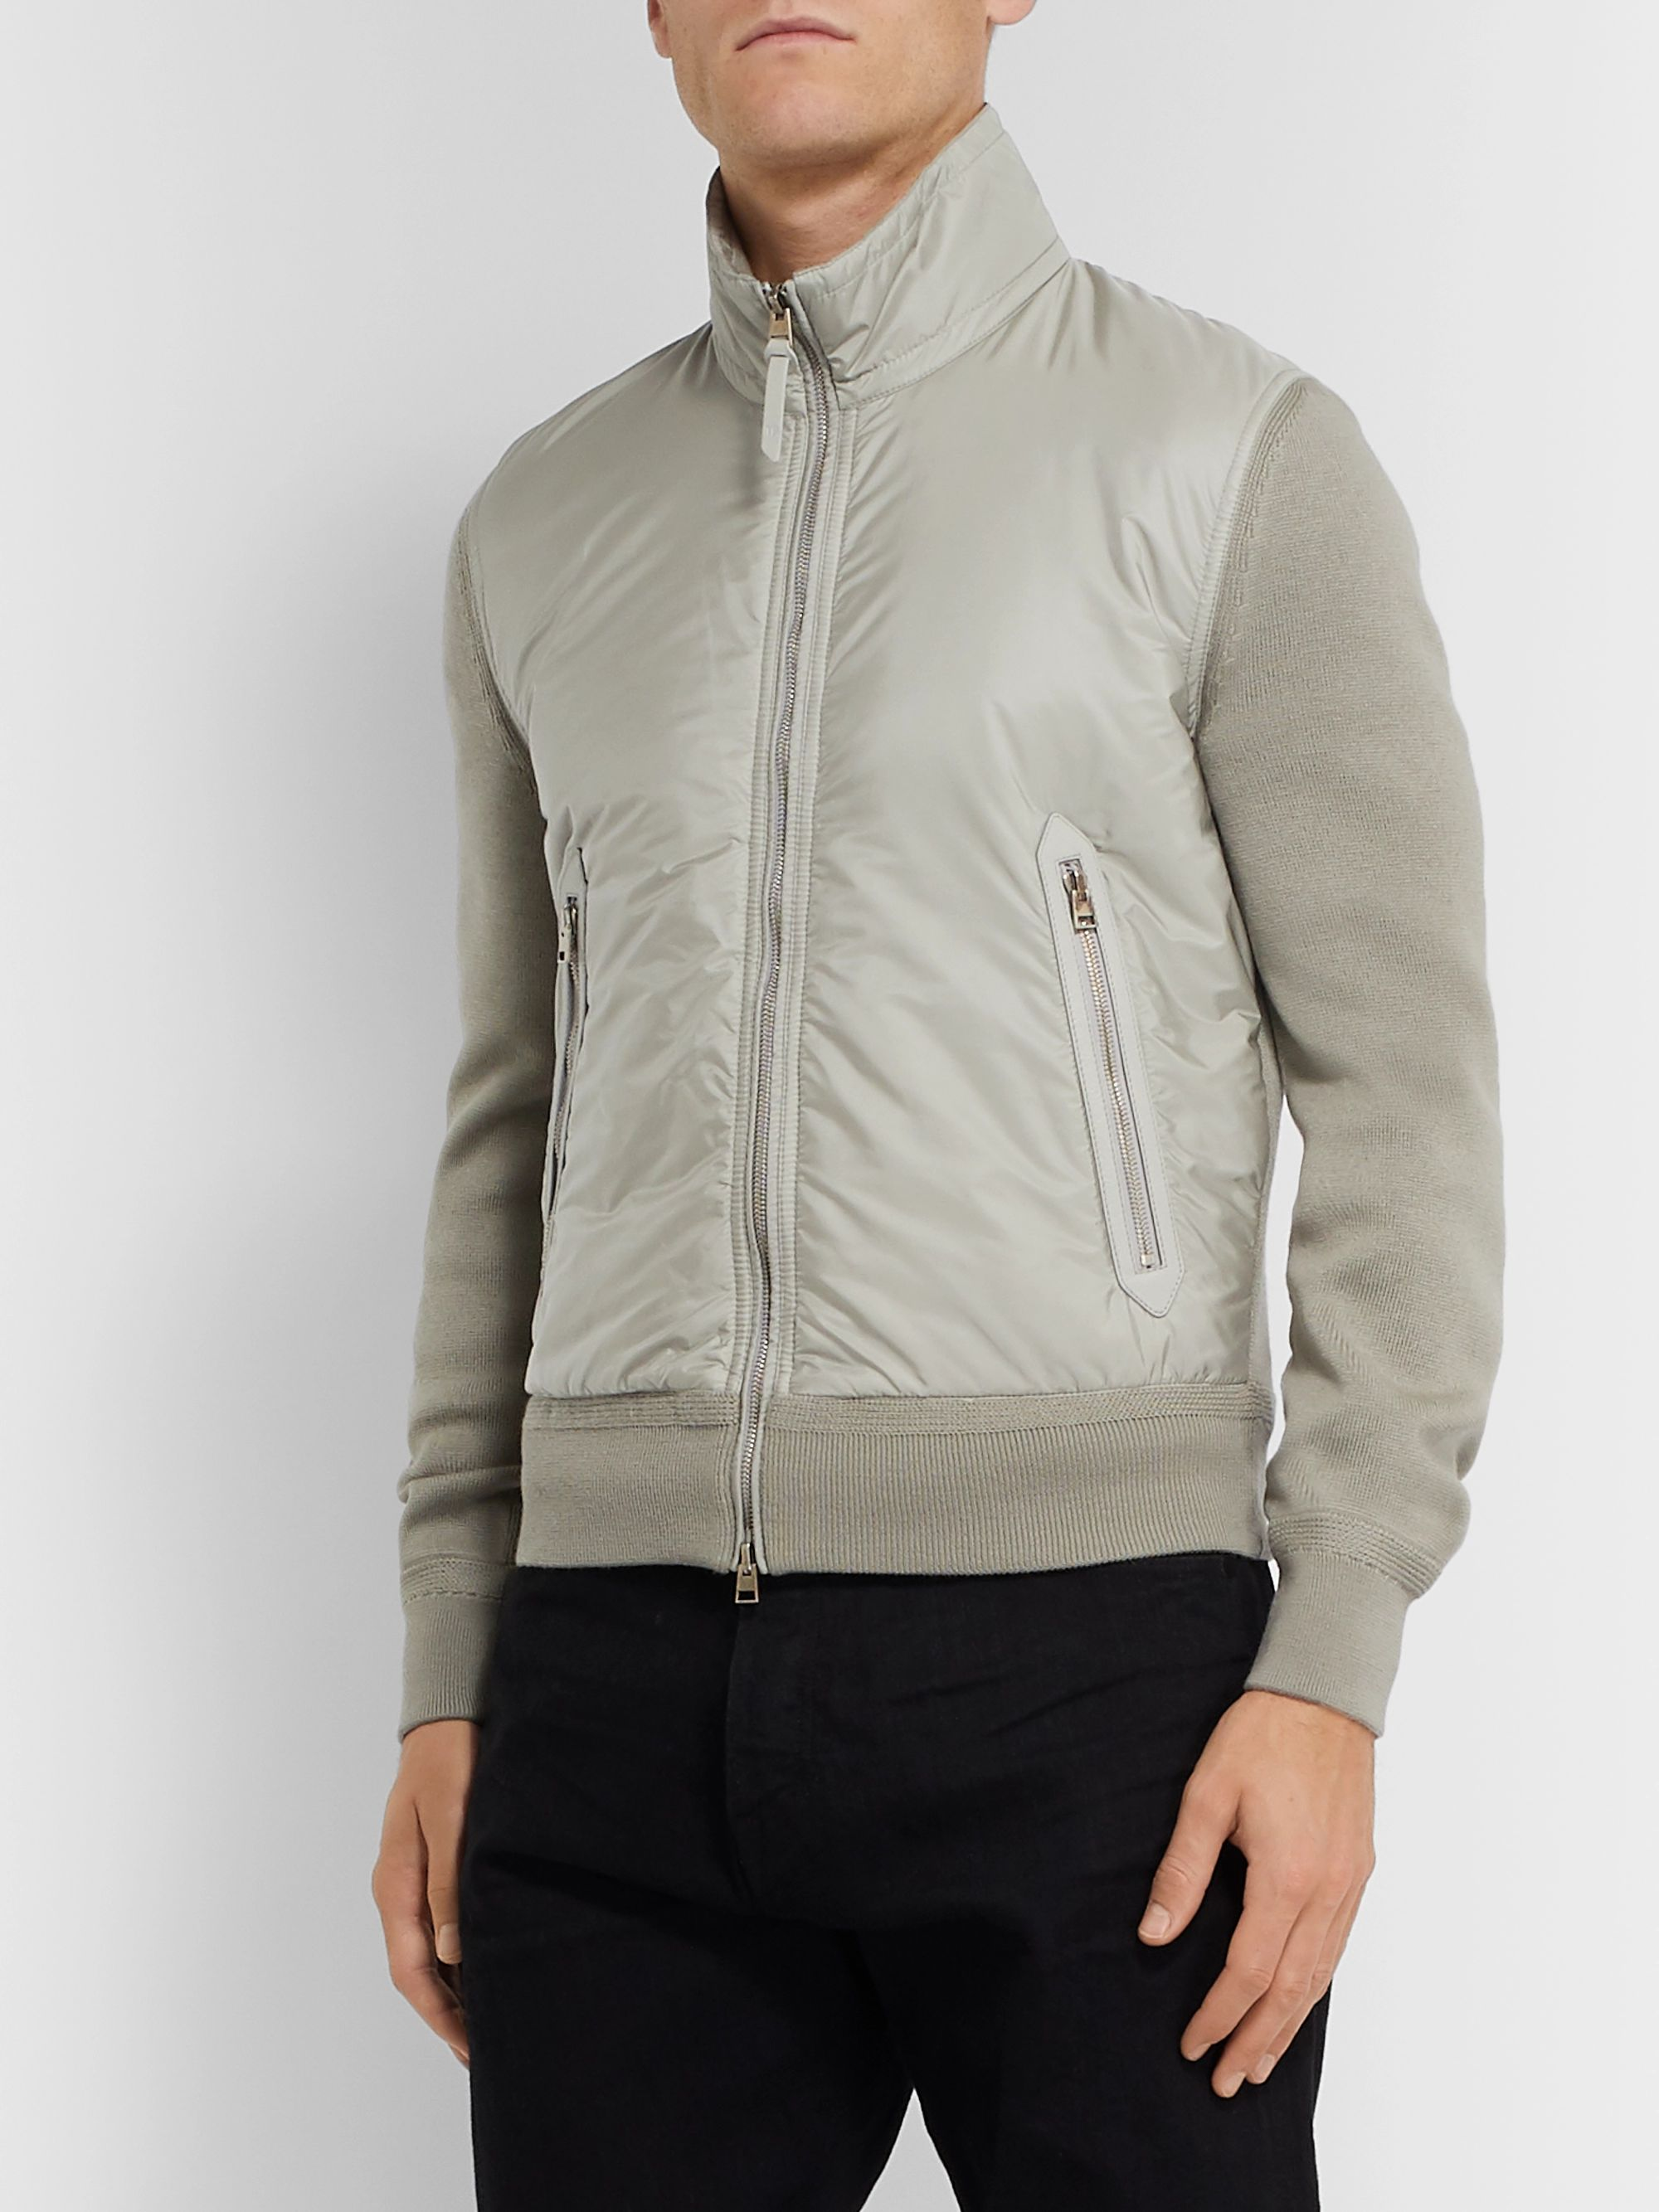 TOM FORD Slim-Fit Merino Wool and Padded Nylon Jacket